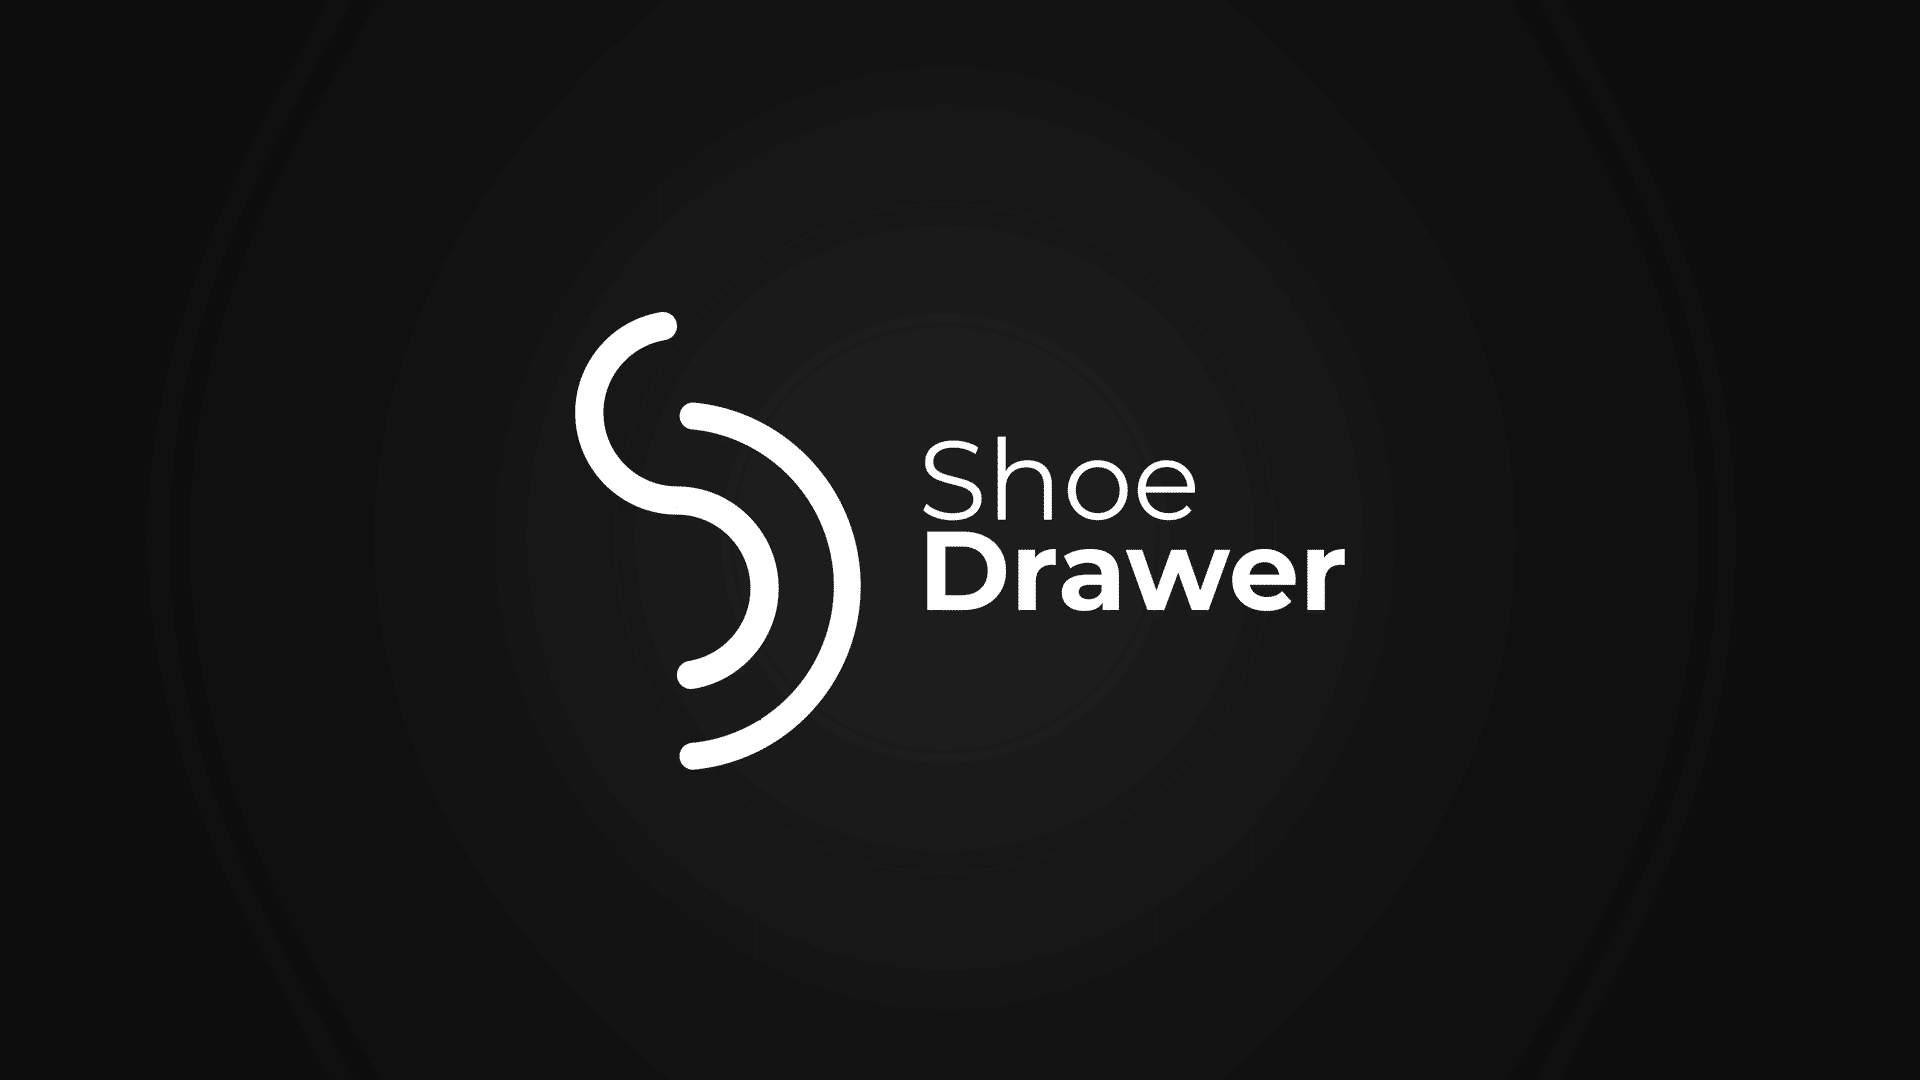 shoe drаwer logo design